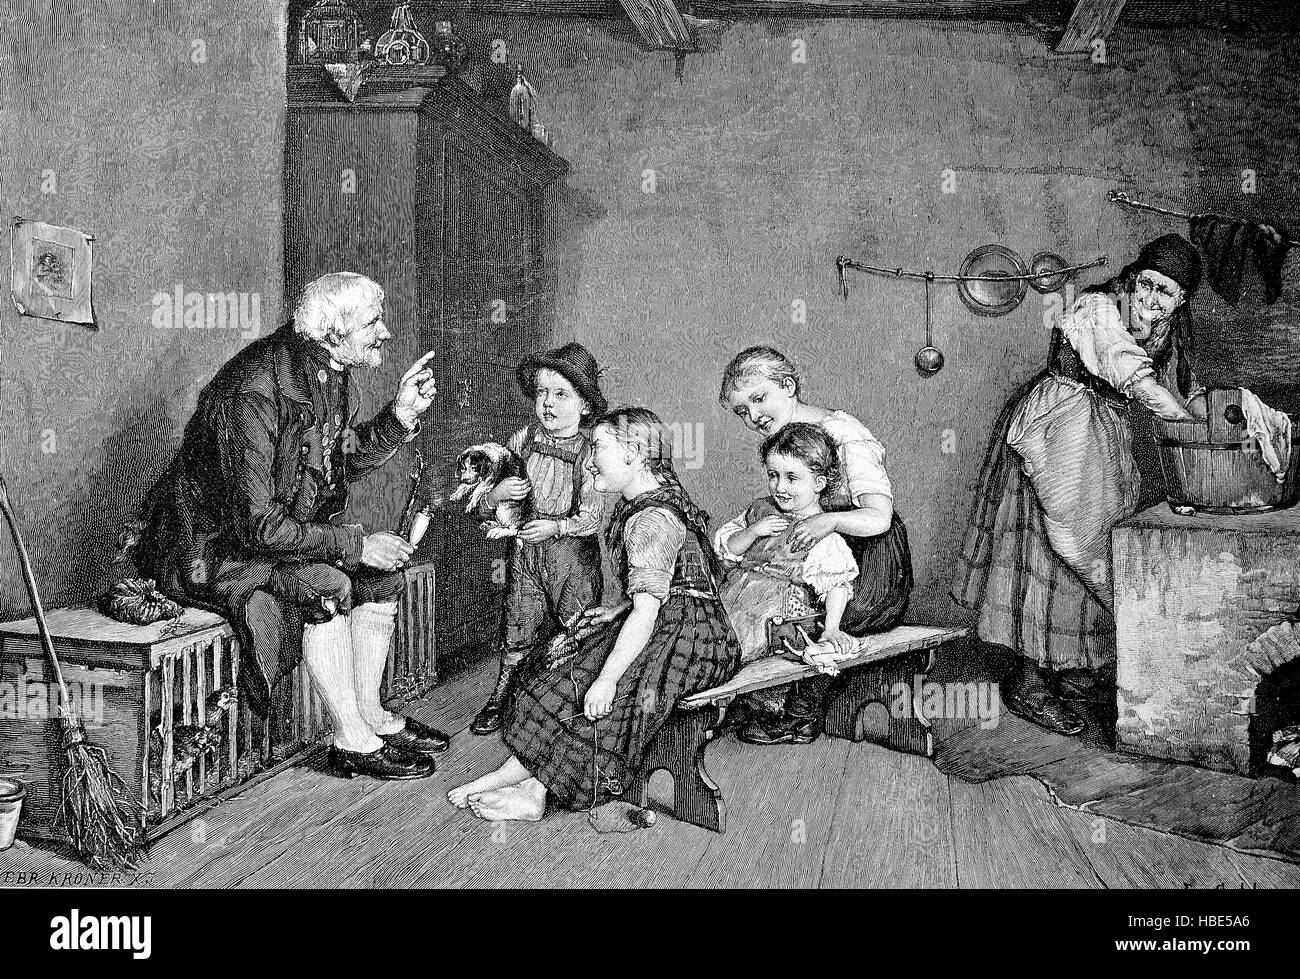 Grandfather tells the grandchildren an exciting story, illustration, woodcut from 1880 - Stock Image